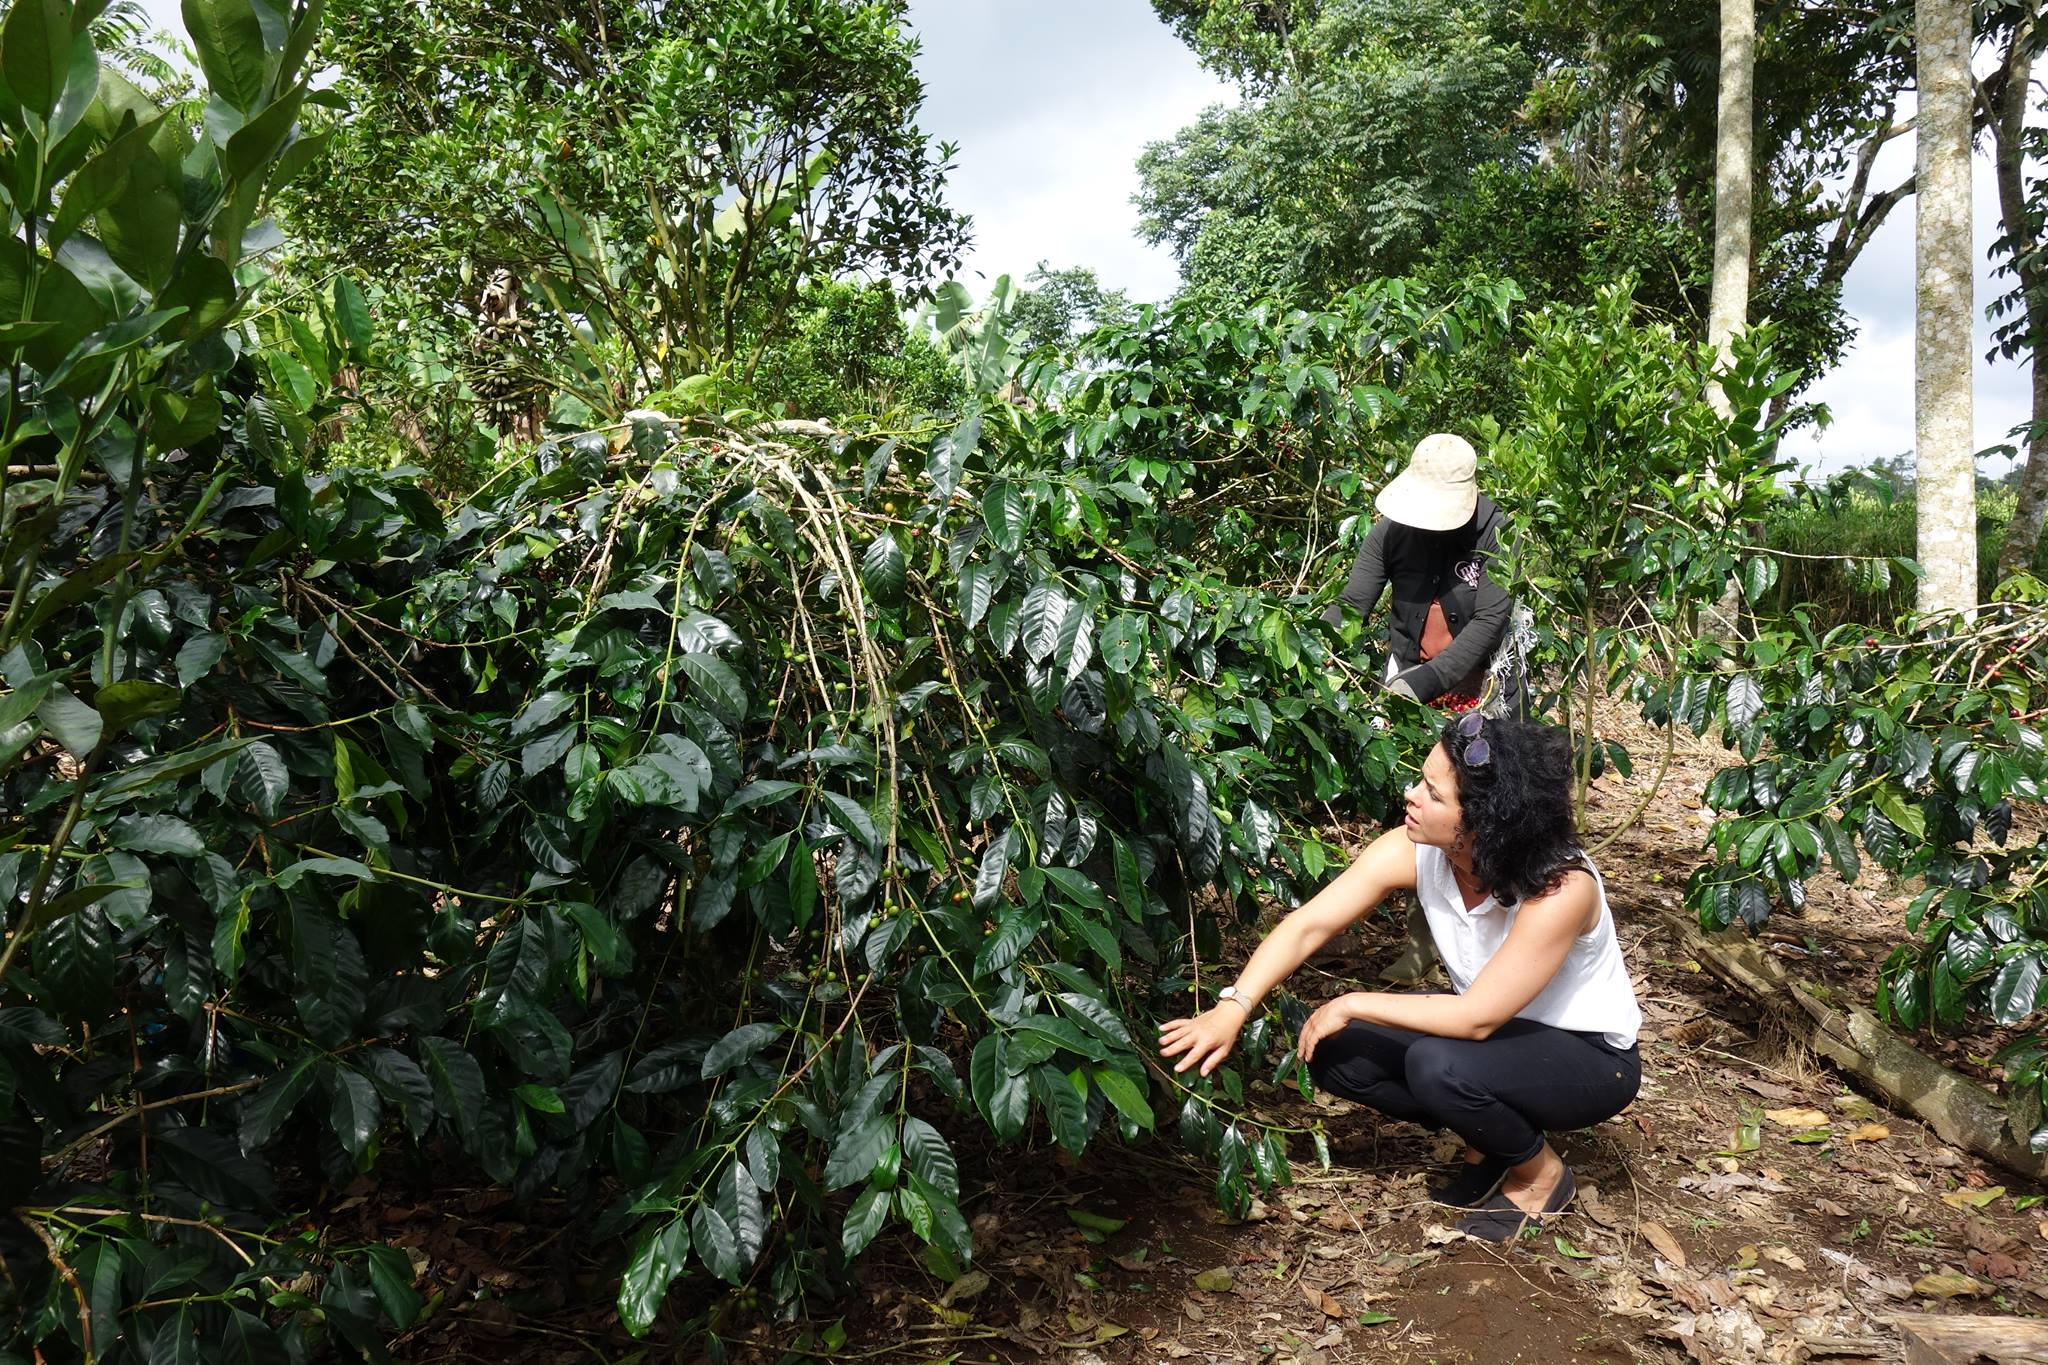 zitadusa coffee plantation.jpg